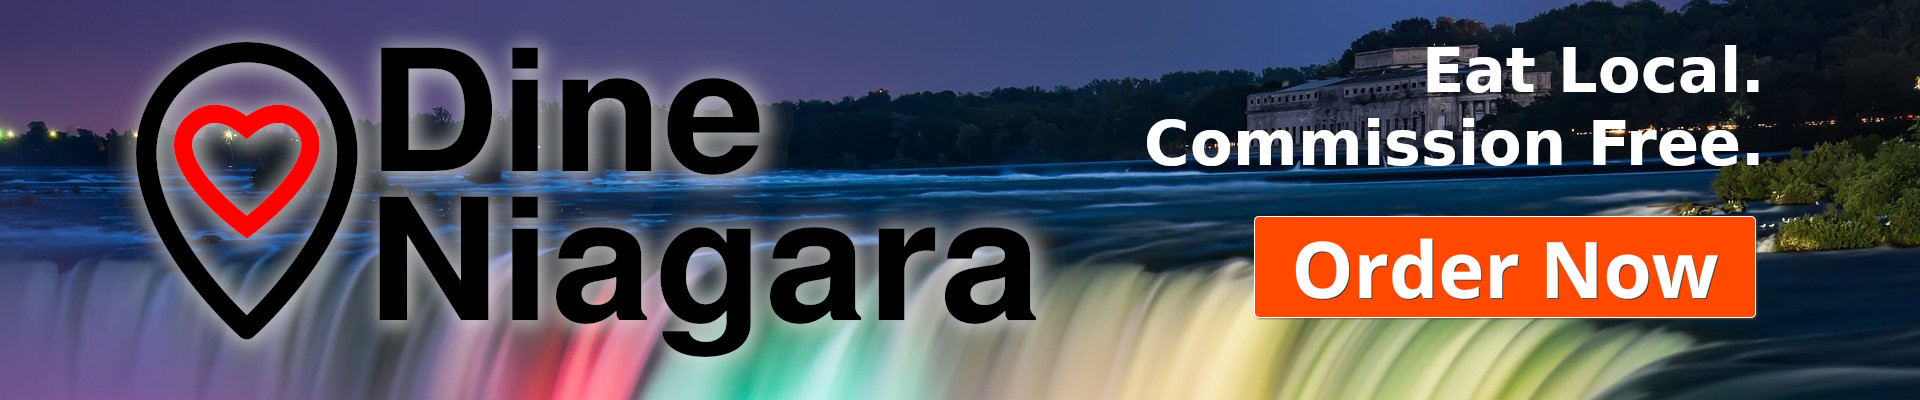 Dine Niagara provides online ordering for Niagara Restaurants that is commission free.